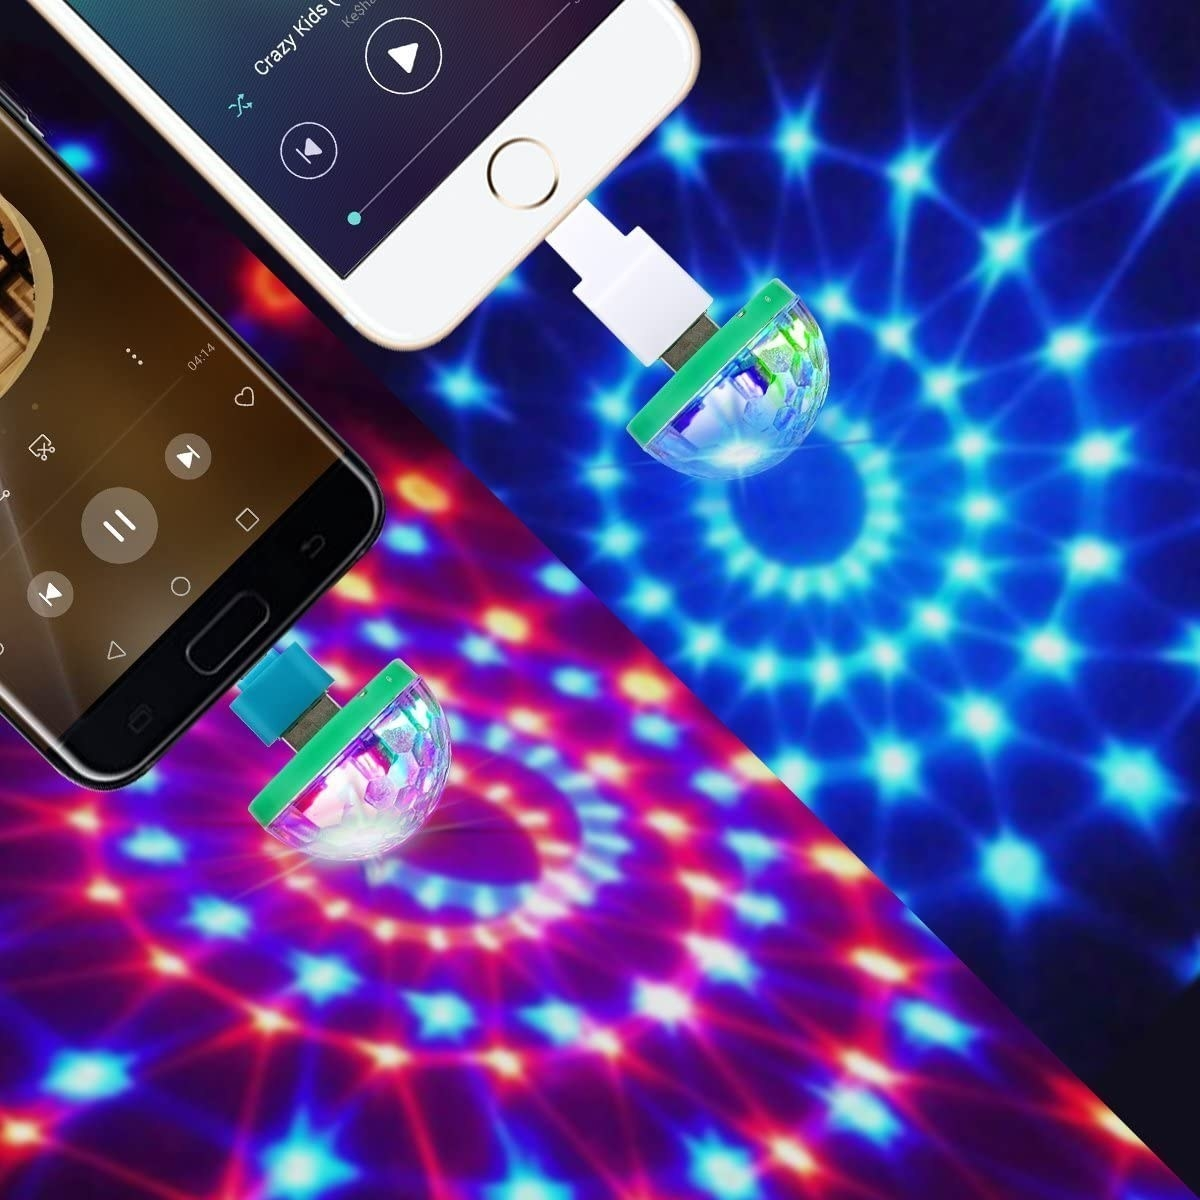 USB disco balls plugged into two phones